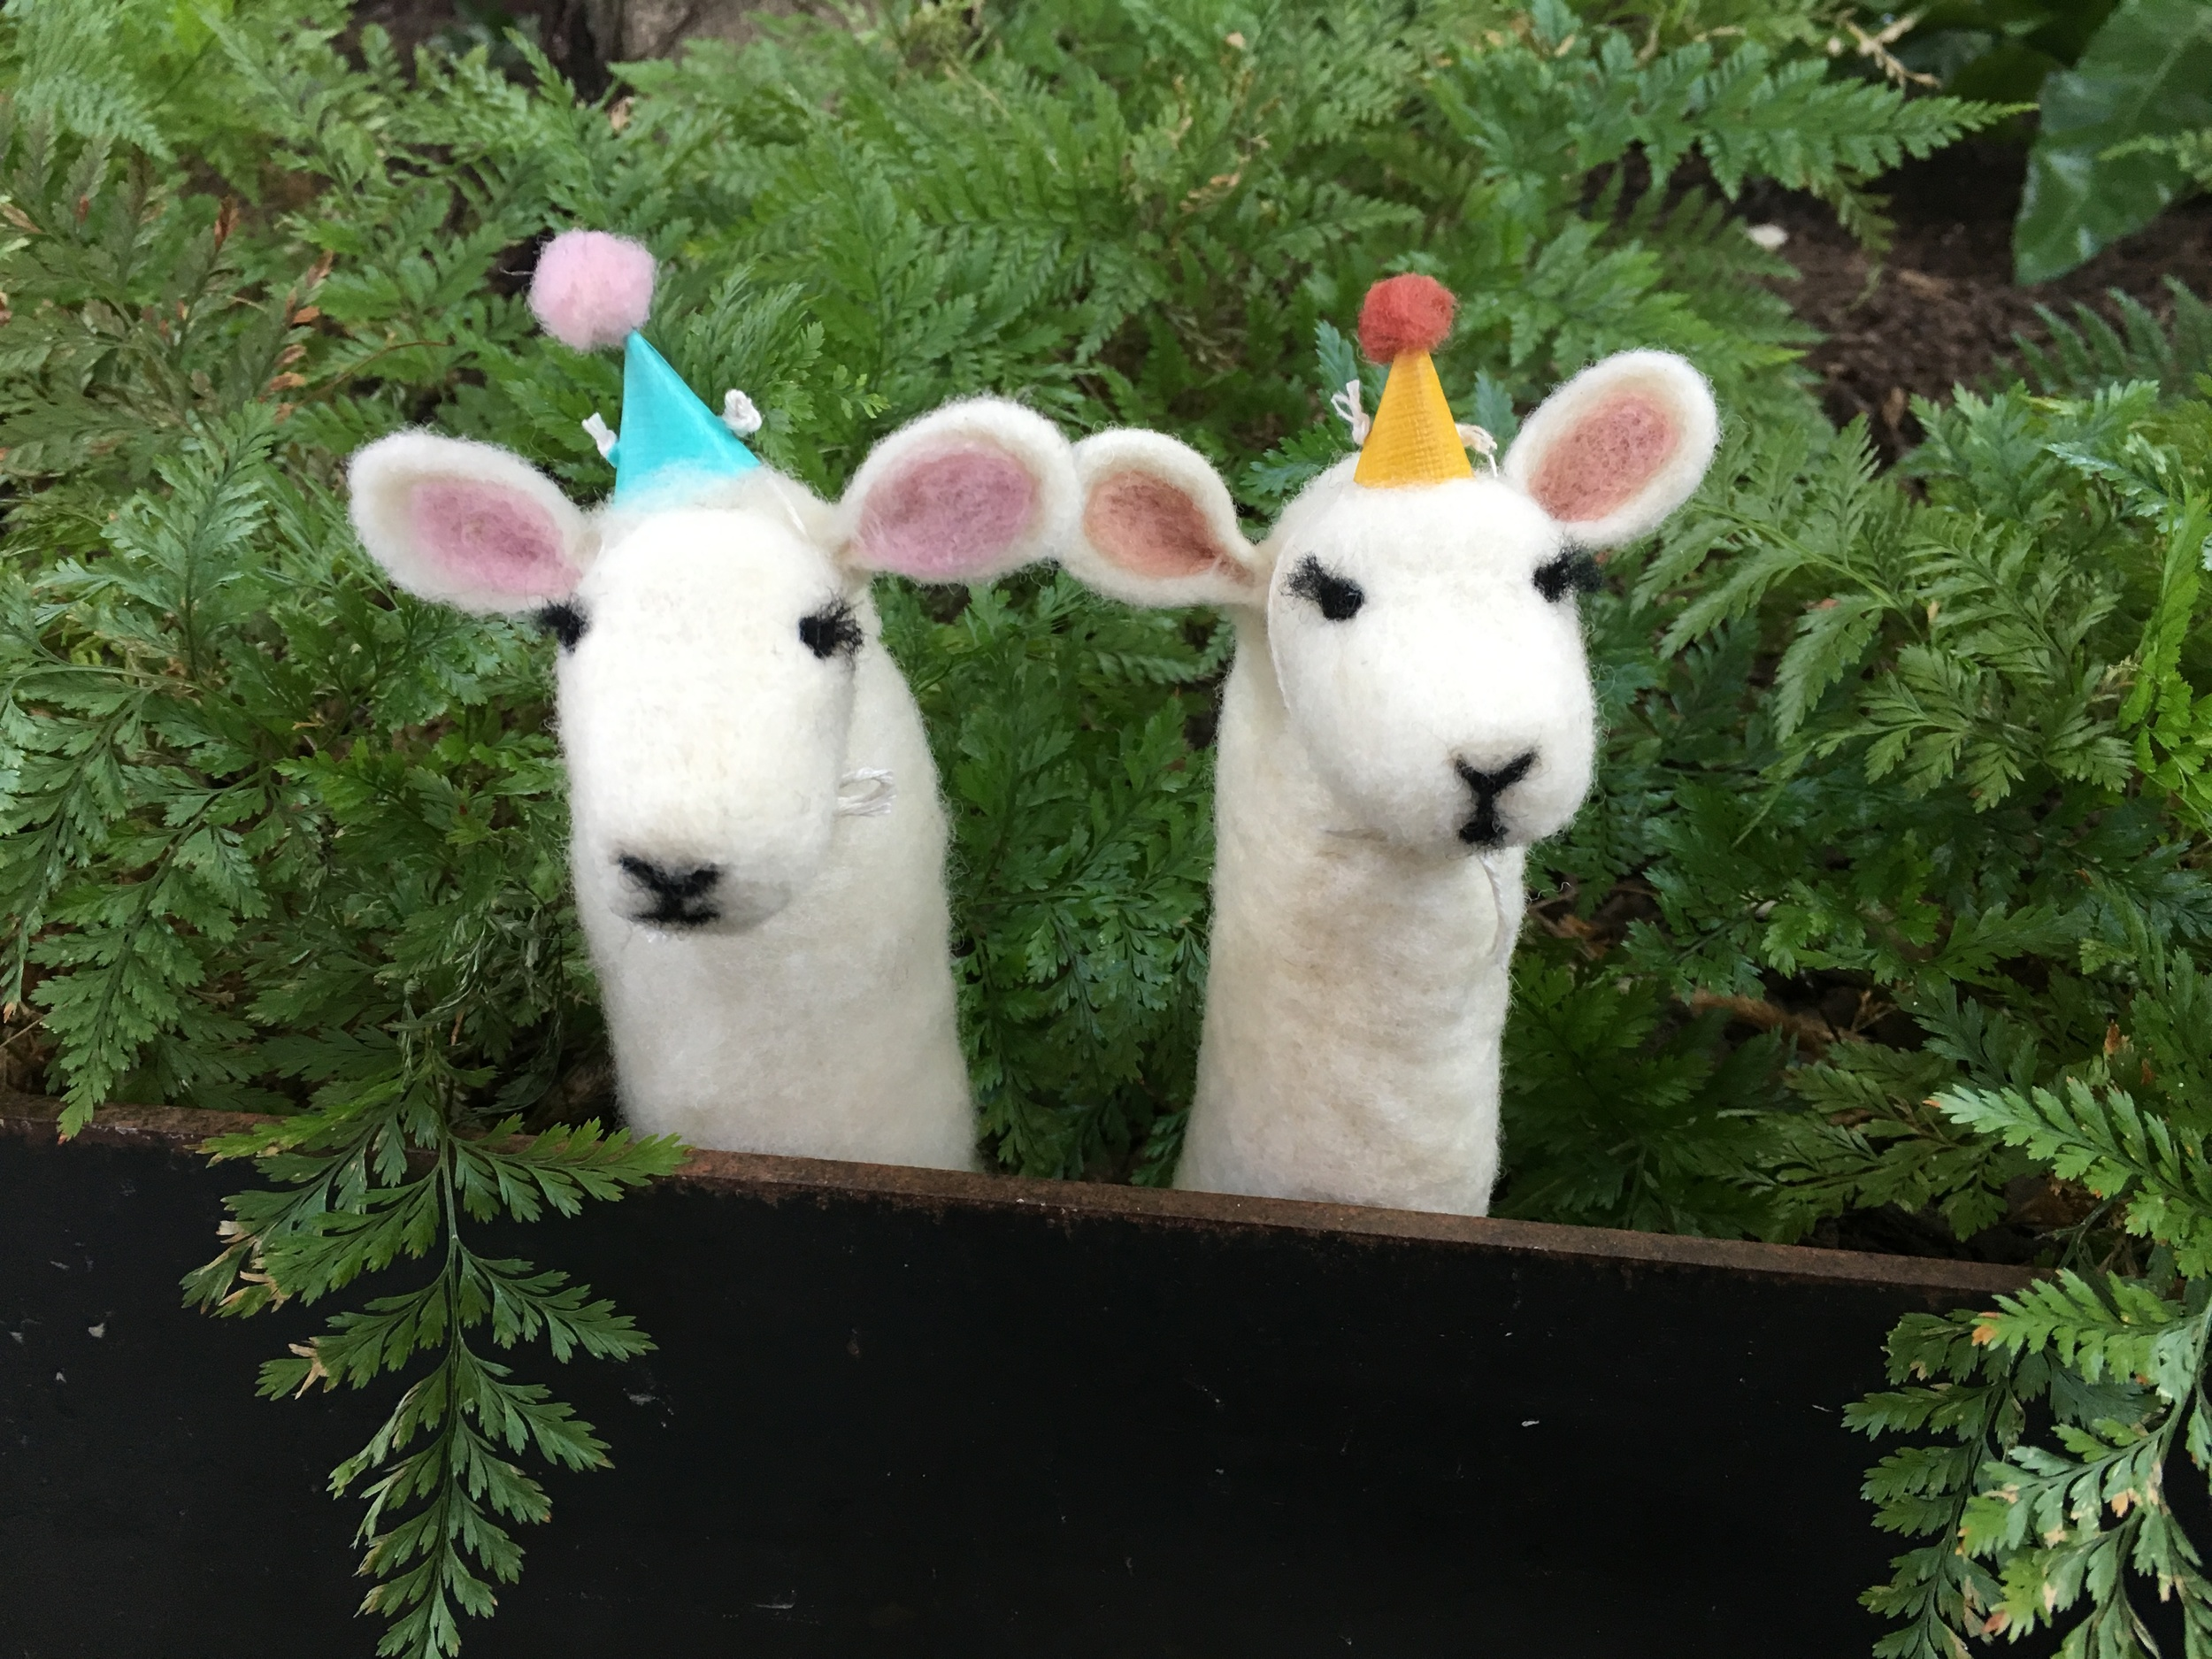 Adorable lamb finger puppets my mom and I made in  Jocelyn Krodman 's addictive needle felting workshop - the felting world hasn't seen the last of me!